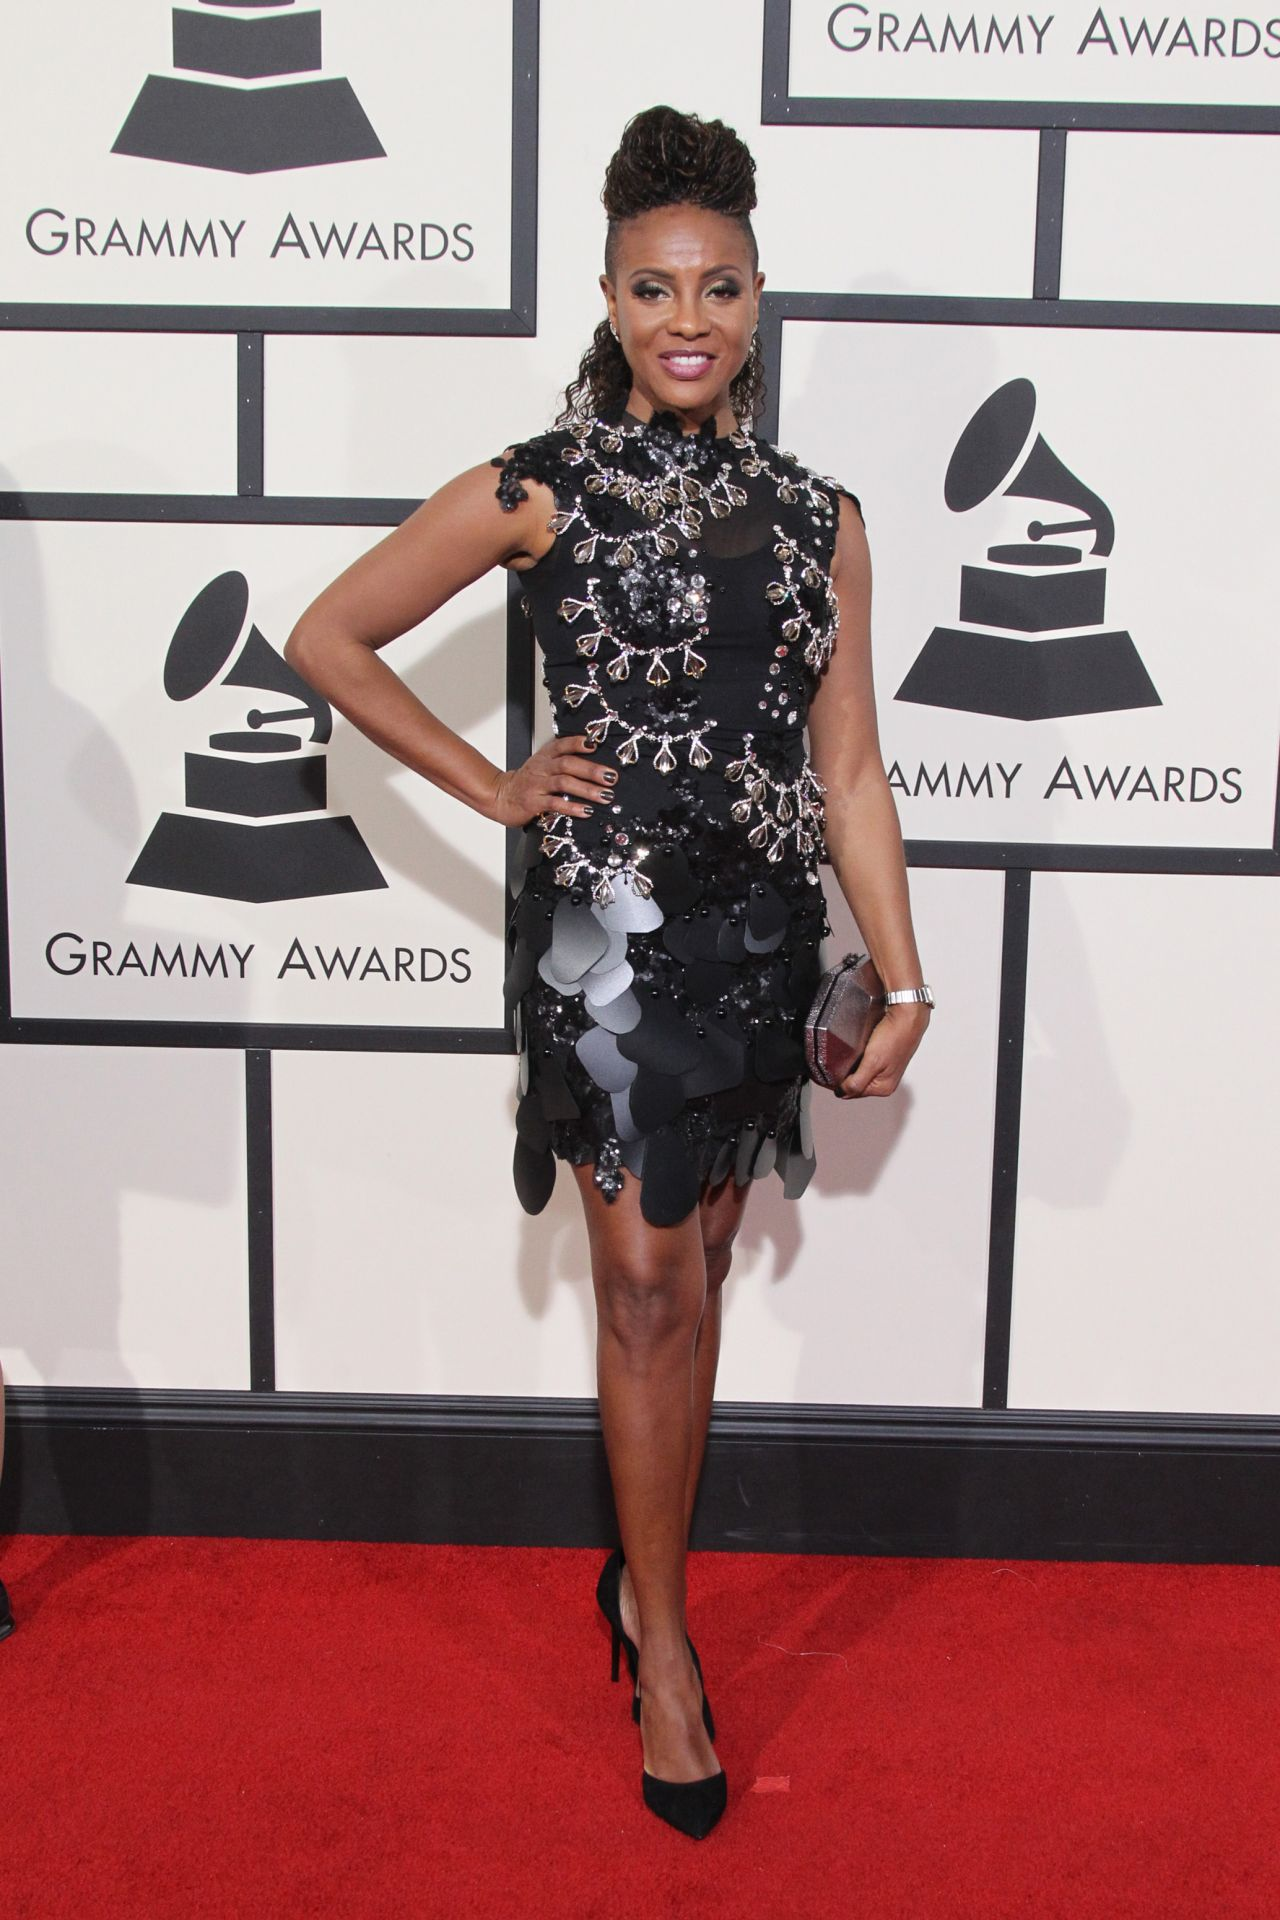 mc-lyte-2016-grammy-awards-in-los-angeles-ca-1